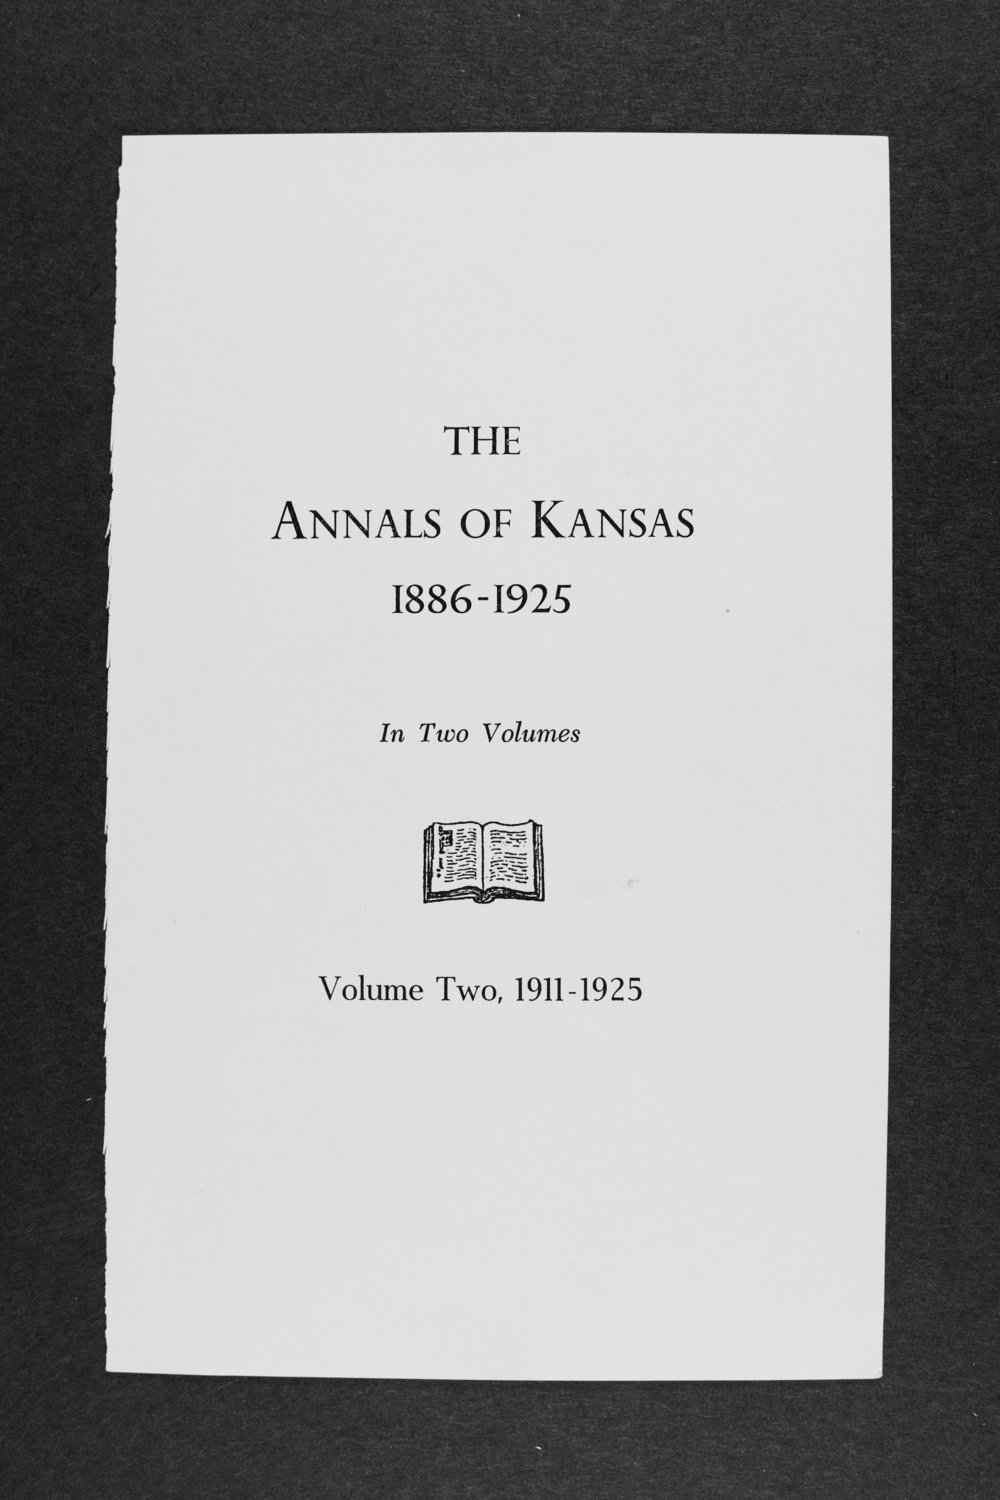 Annals of Kansas, volume two, 1911-1925 - Title Page